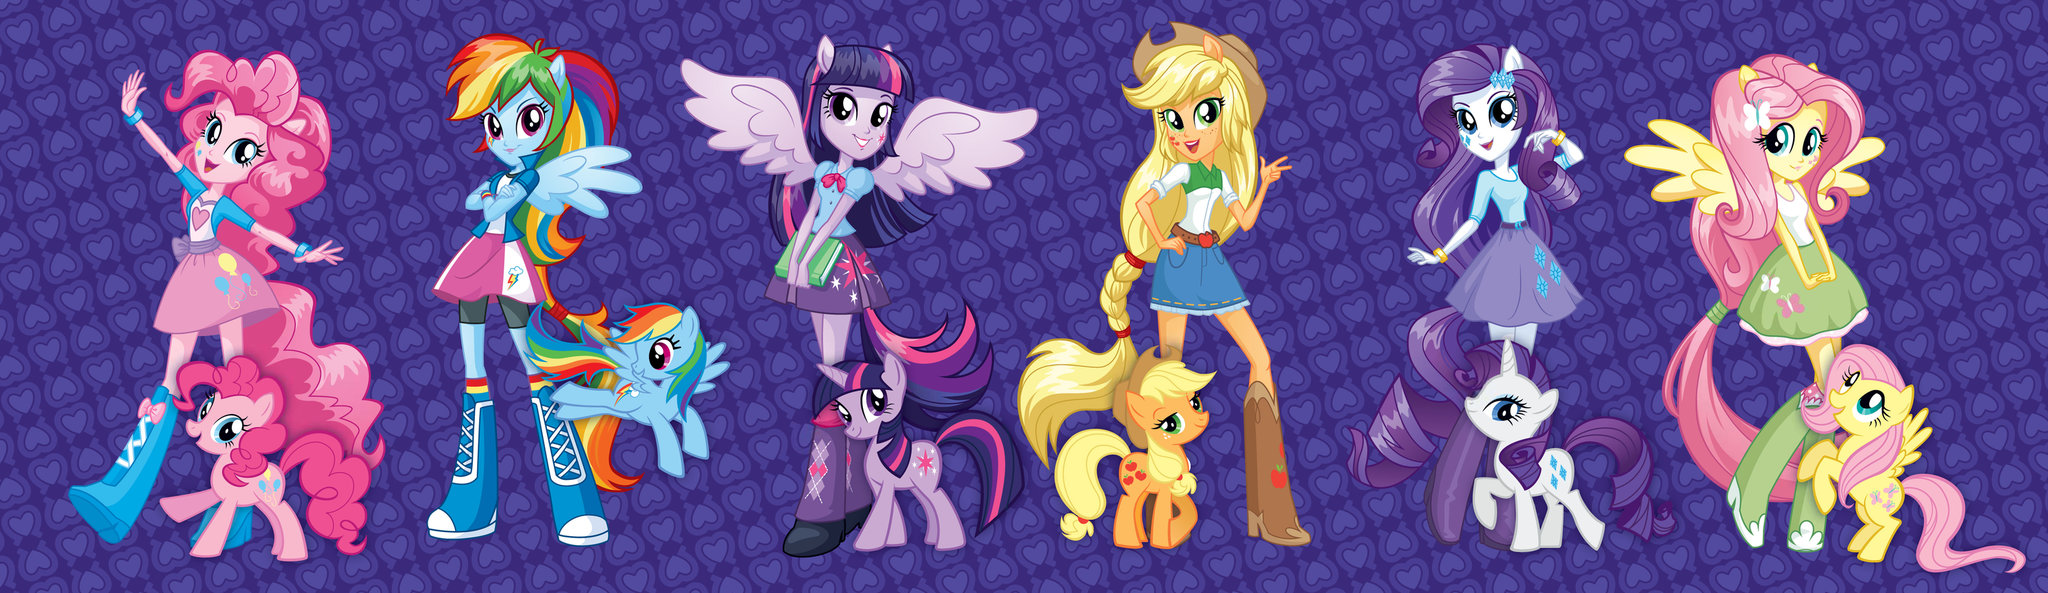 My Little Pony: Friendship is Magic - Page 5 Equestria_Girls_March_2_2013_character_designs